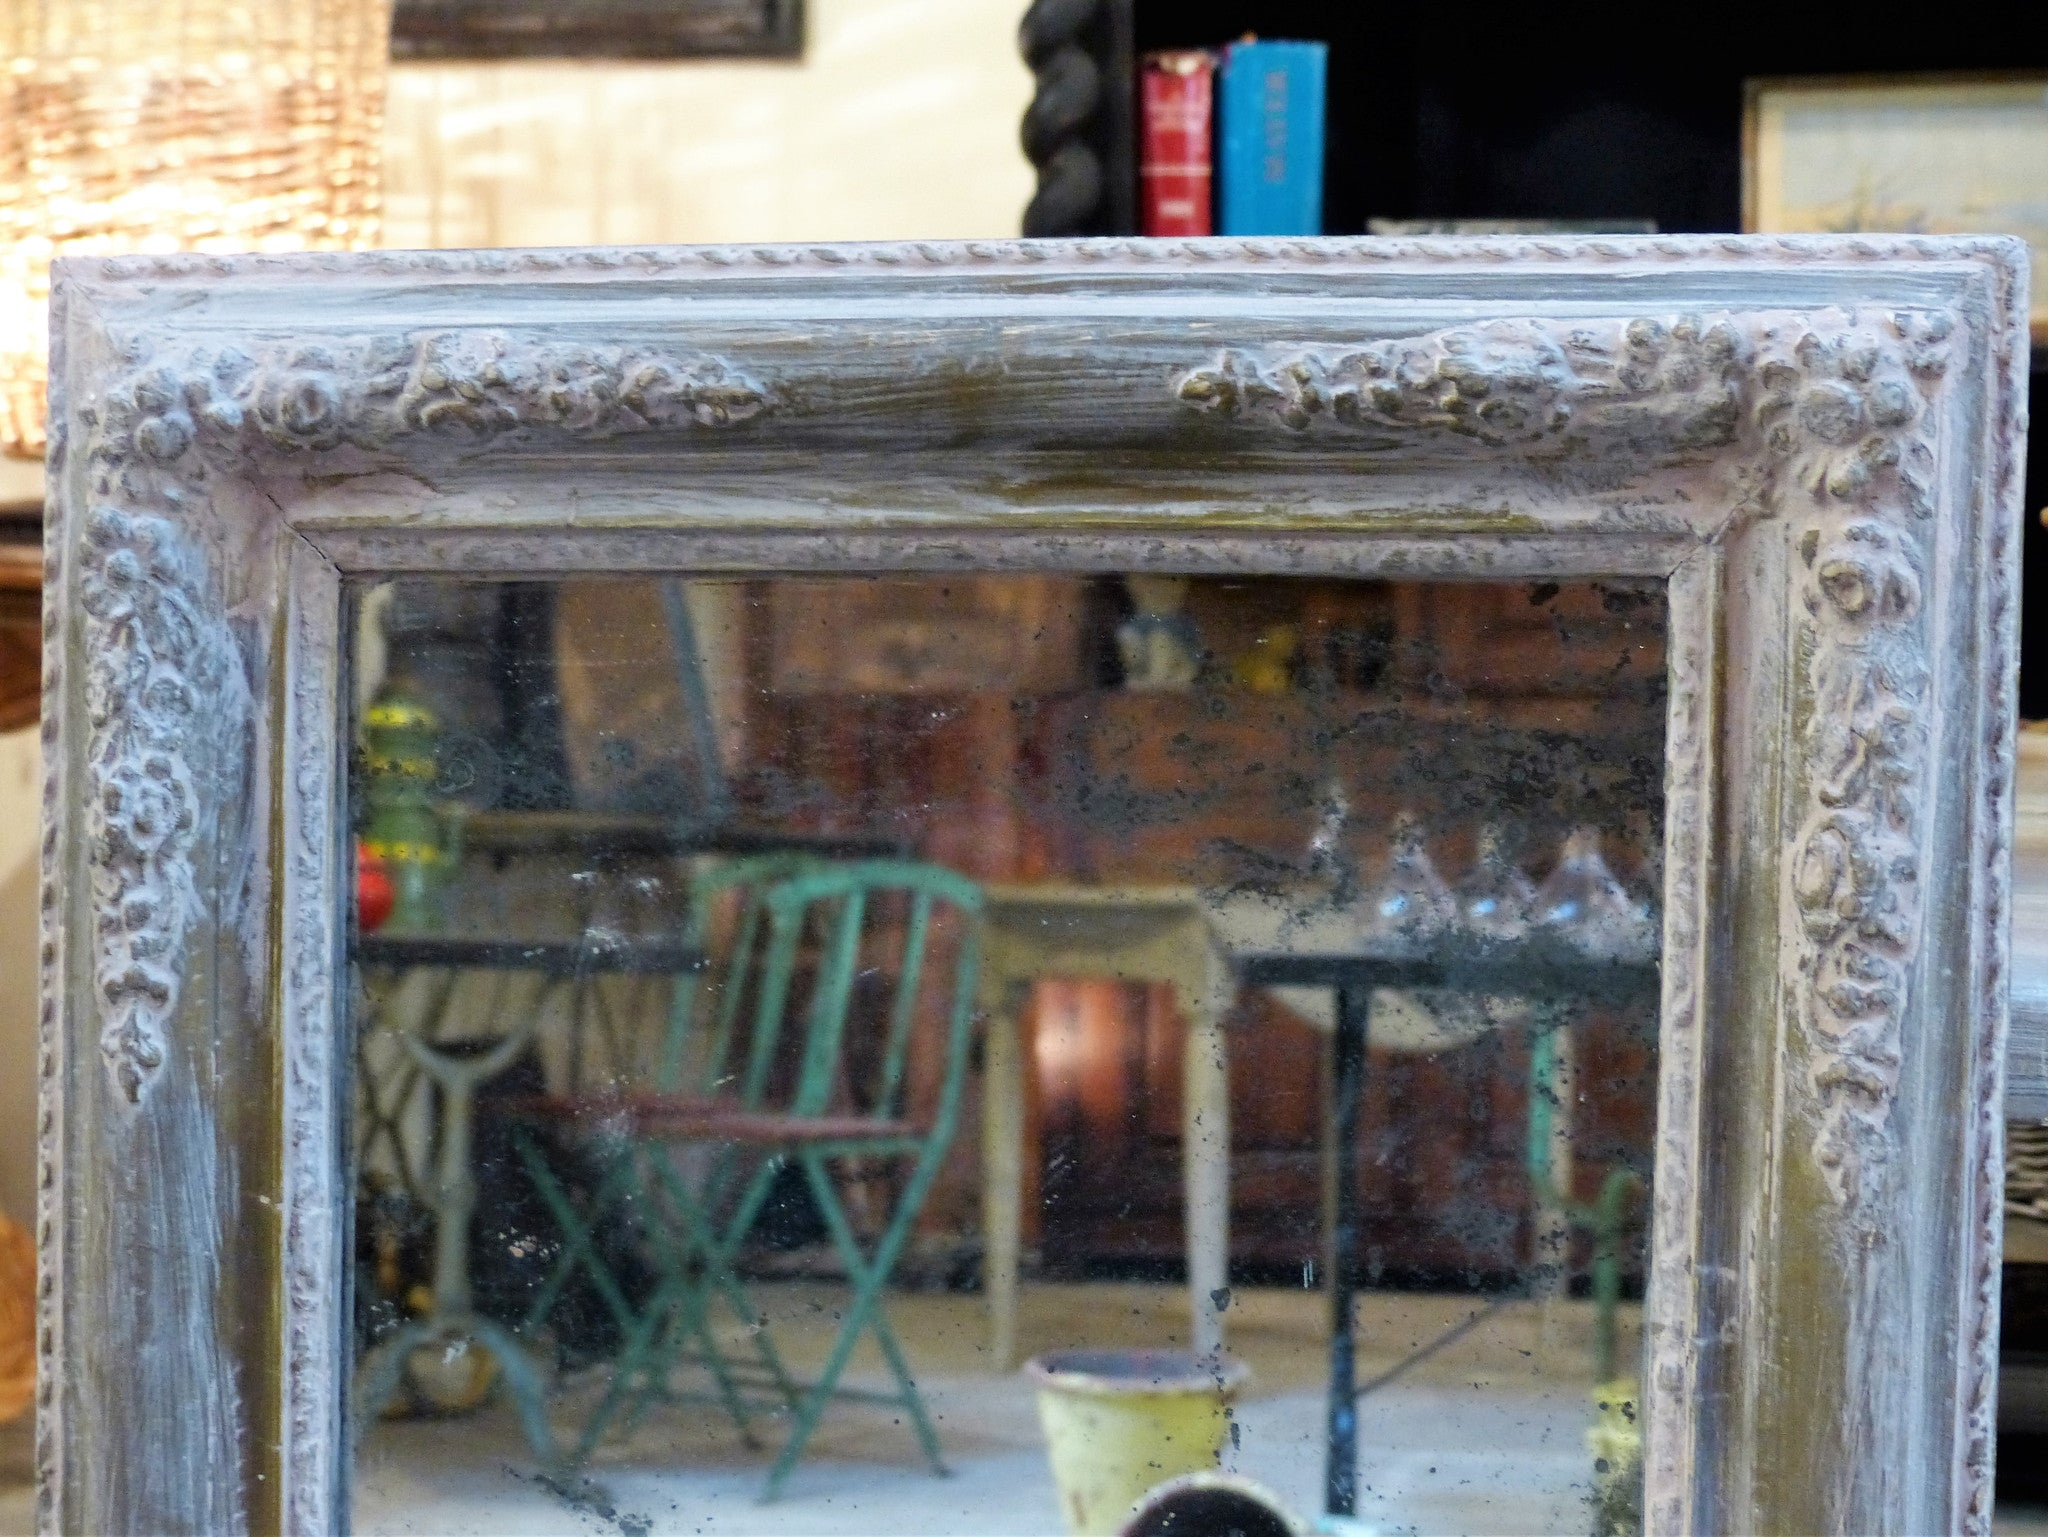 19th century rectangular mirror with original glass and pink patina